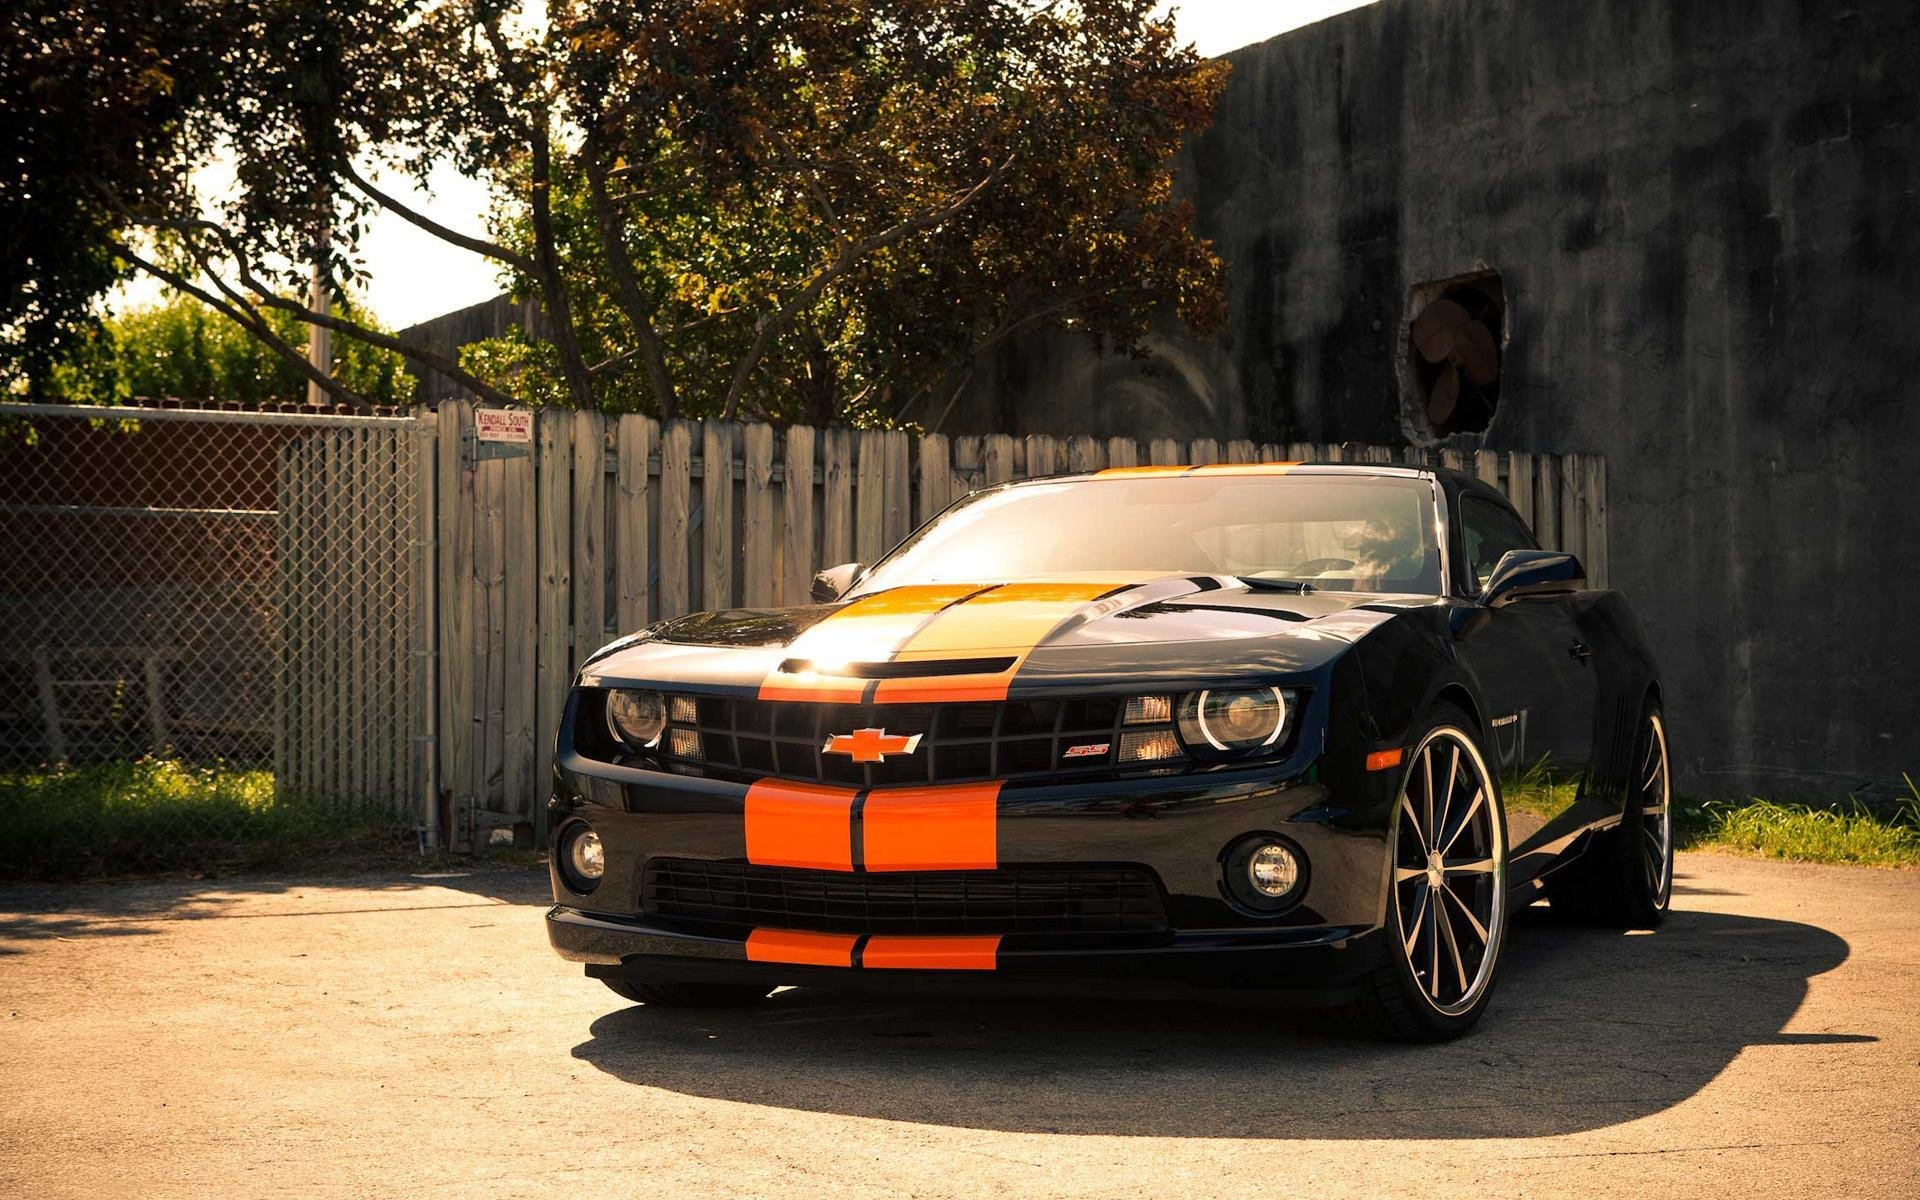 New Chevrolet Camaro Ss Car Wallpapers Hd Wallpapers Id 11784 On This Month